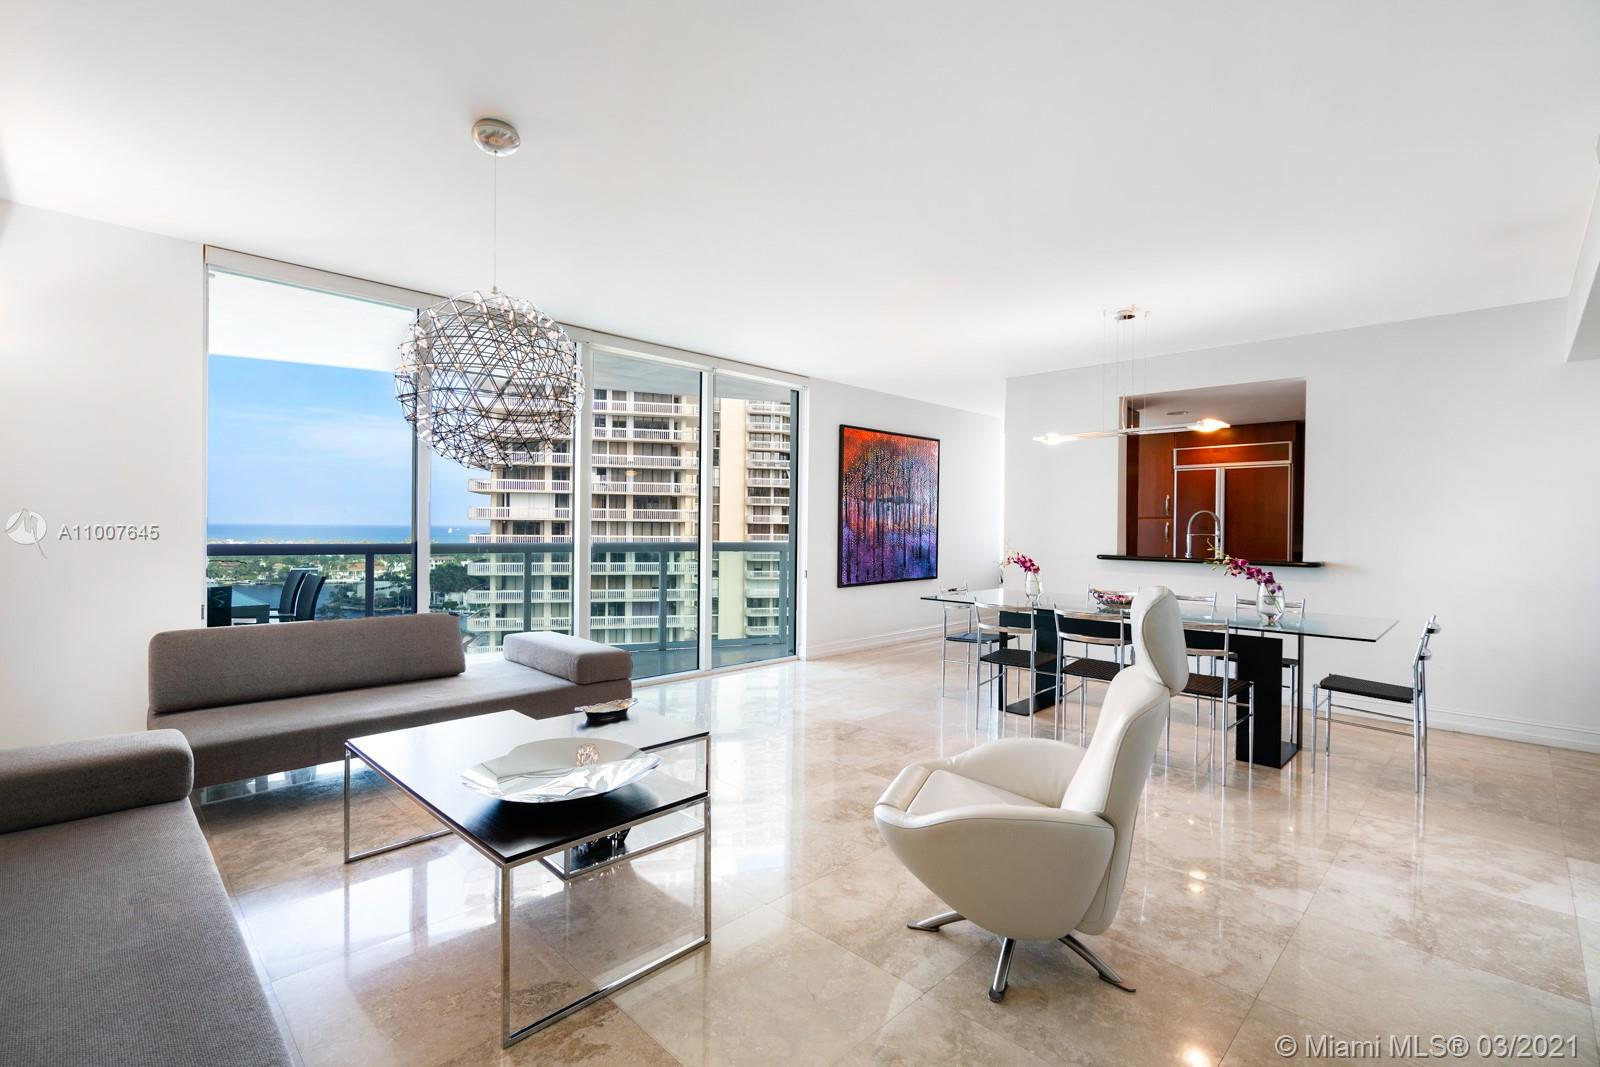 Amazing 3 Bed 3 Bath.  Water views from all the rooms, living room and kitchen. The best line in the building, balcony overlooking the intracoastal. Private elevator opens DIRECTLY into unit. Building amenities include pool, jacuzzi, sauna, steamer, fully serviced gym, security, shabbat elevator and lobby concierge 24/7. Within a 5 min drive of Aventura Mall, Turnberry golf club, Surfside, and Golden Beach. In front to Edmond J Safra Synagogue.